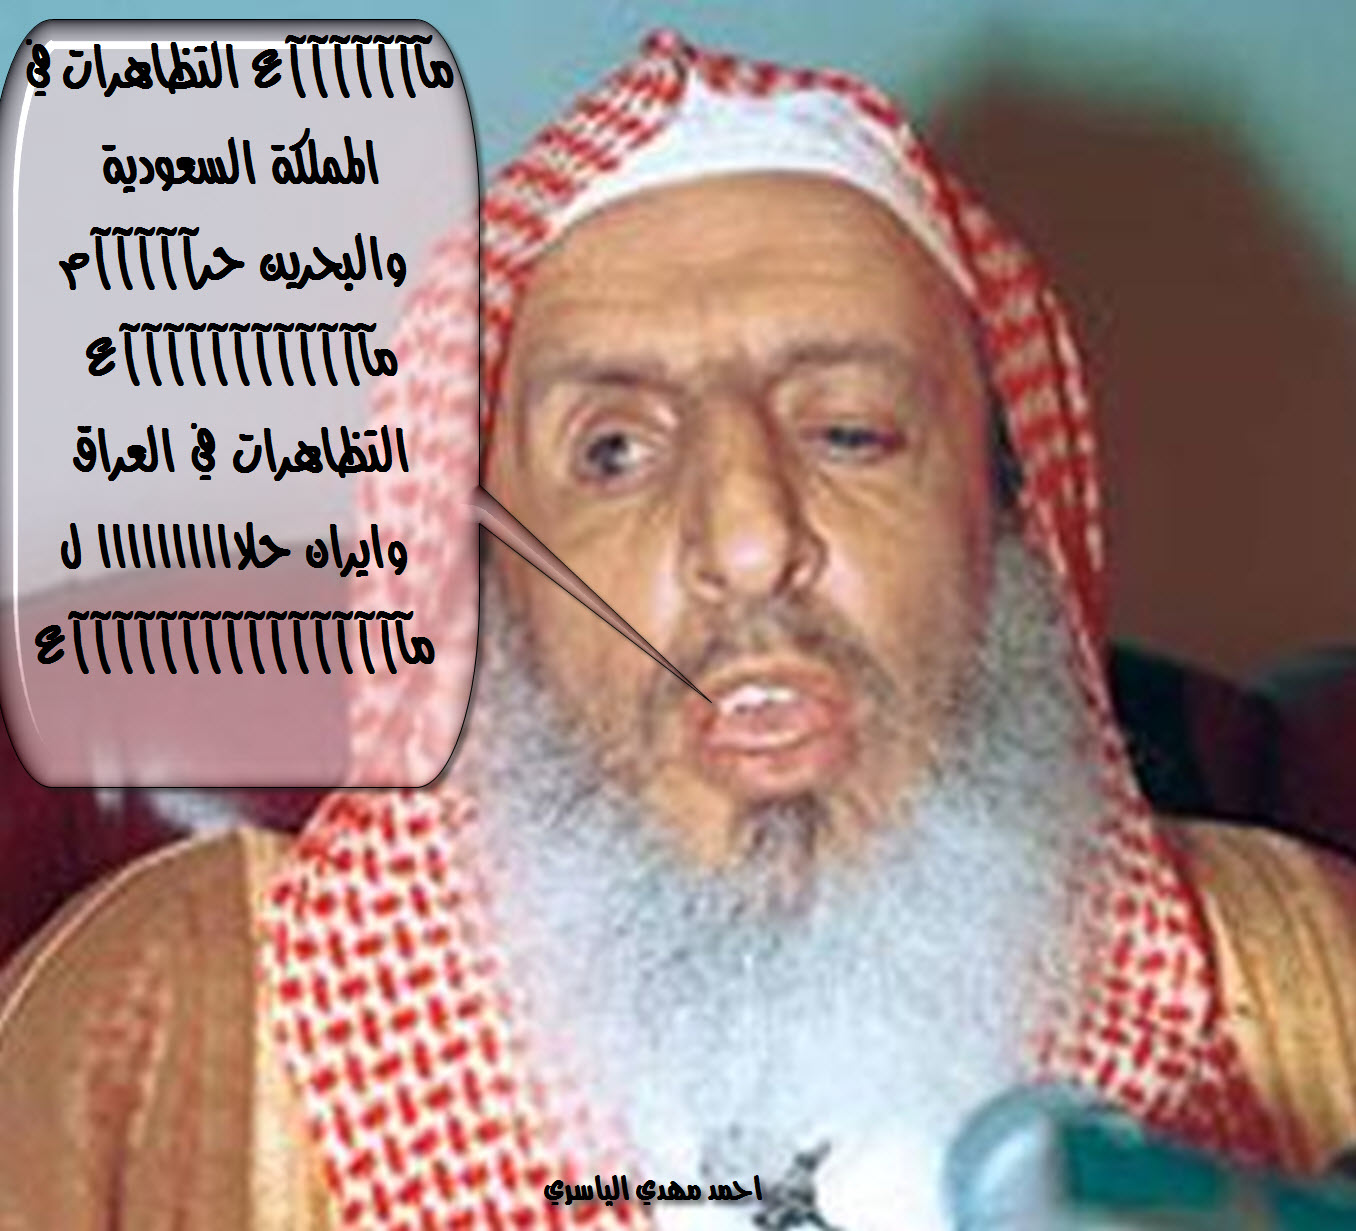 فضائح بنات ال سعود& ult http://albrog.blogspot.com/2011/11/blog-post_1158.html